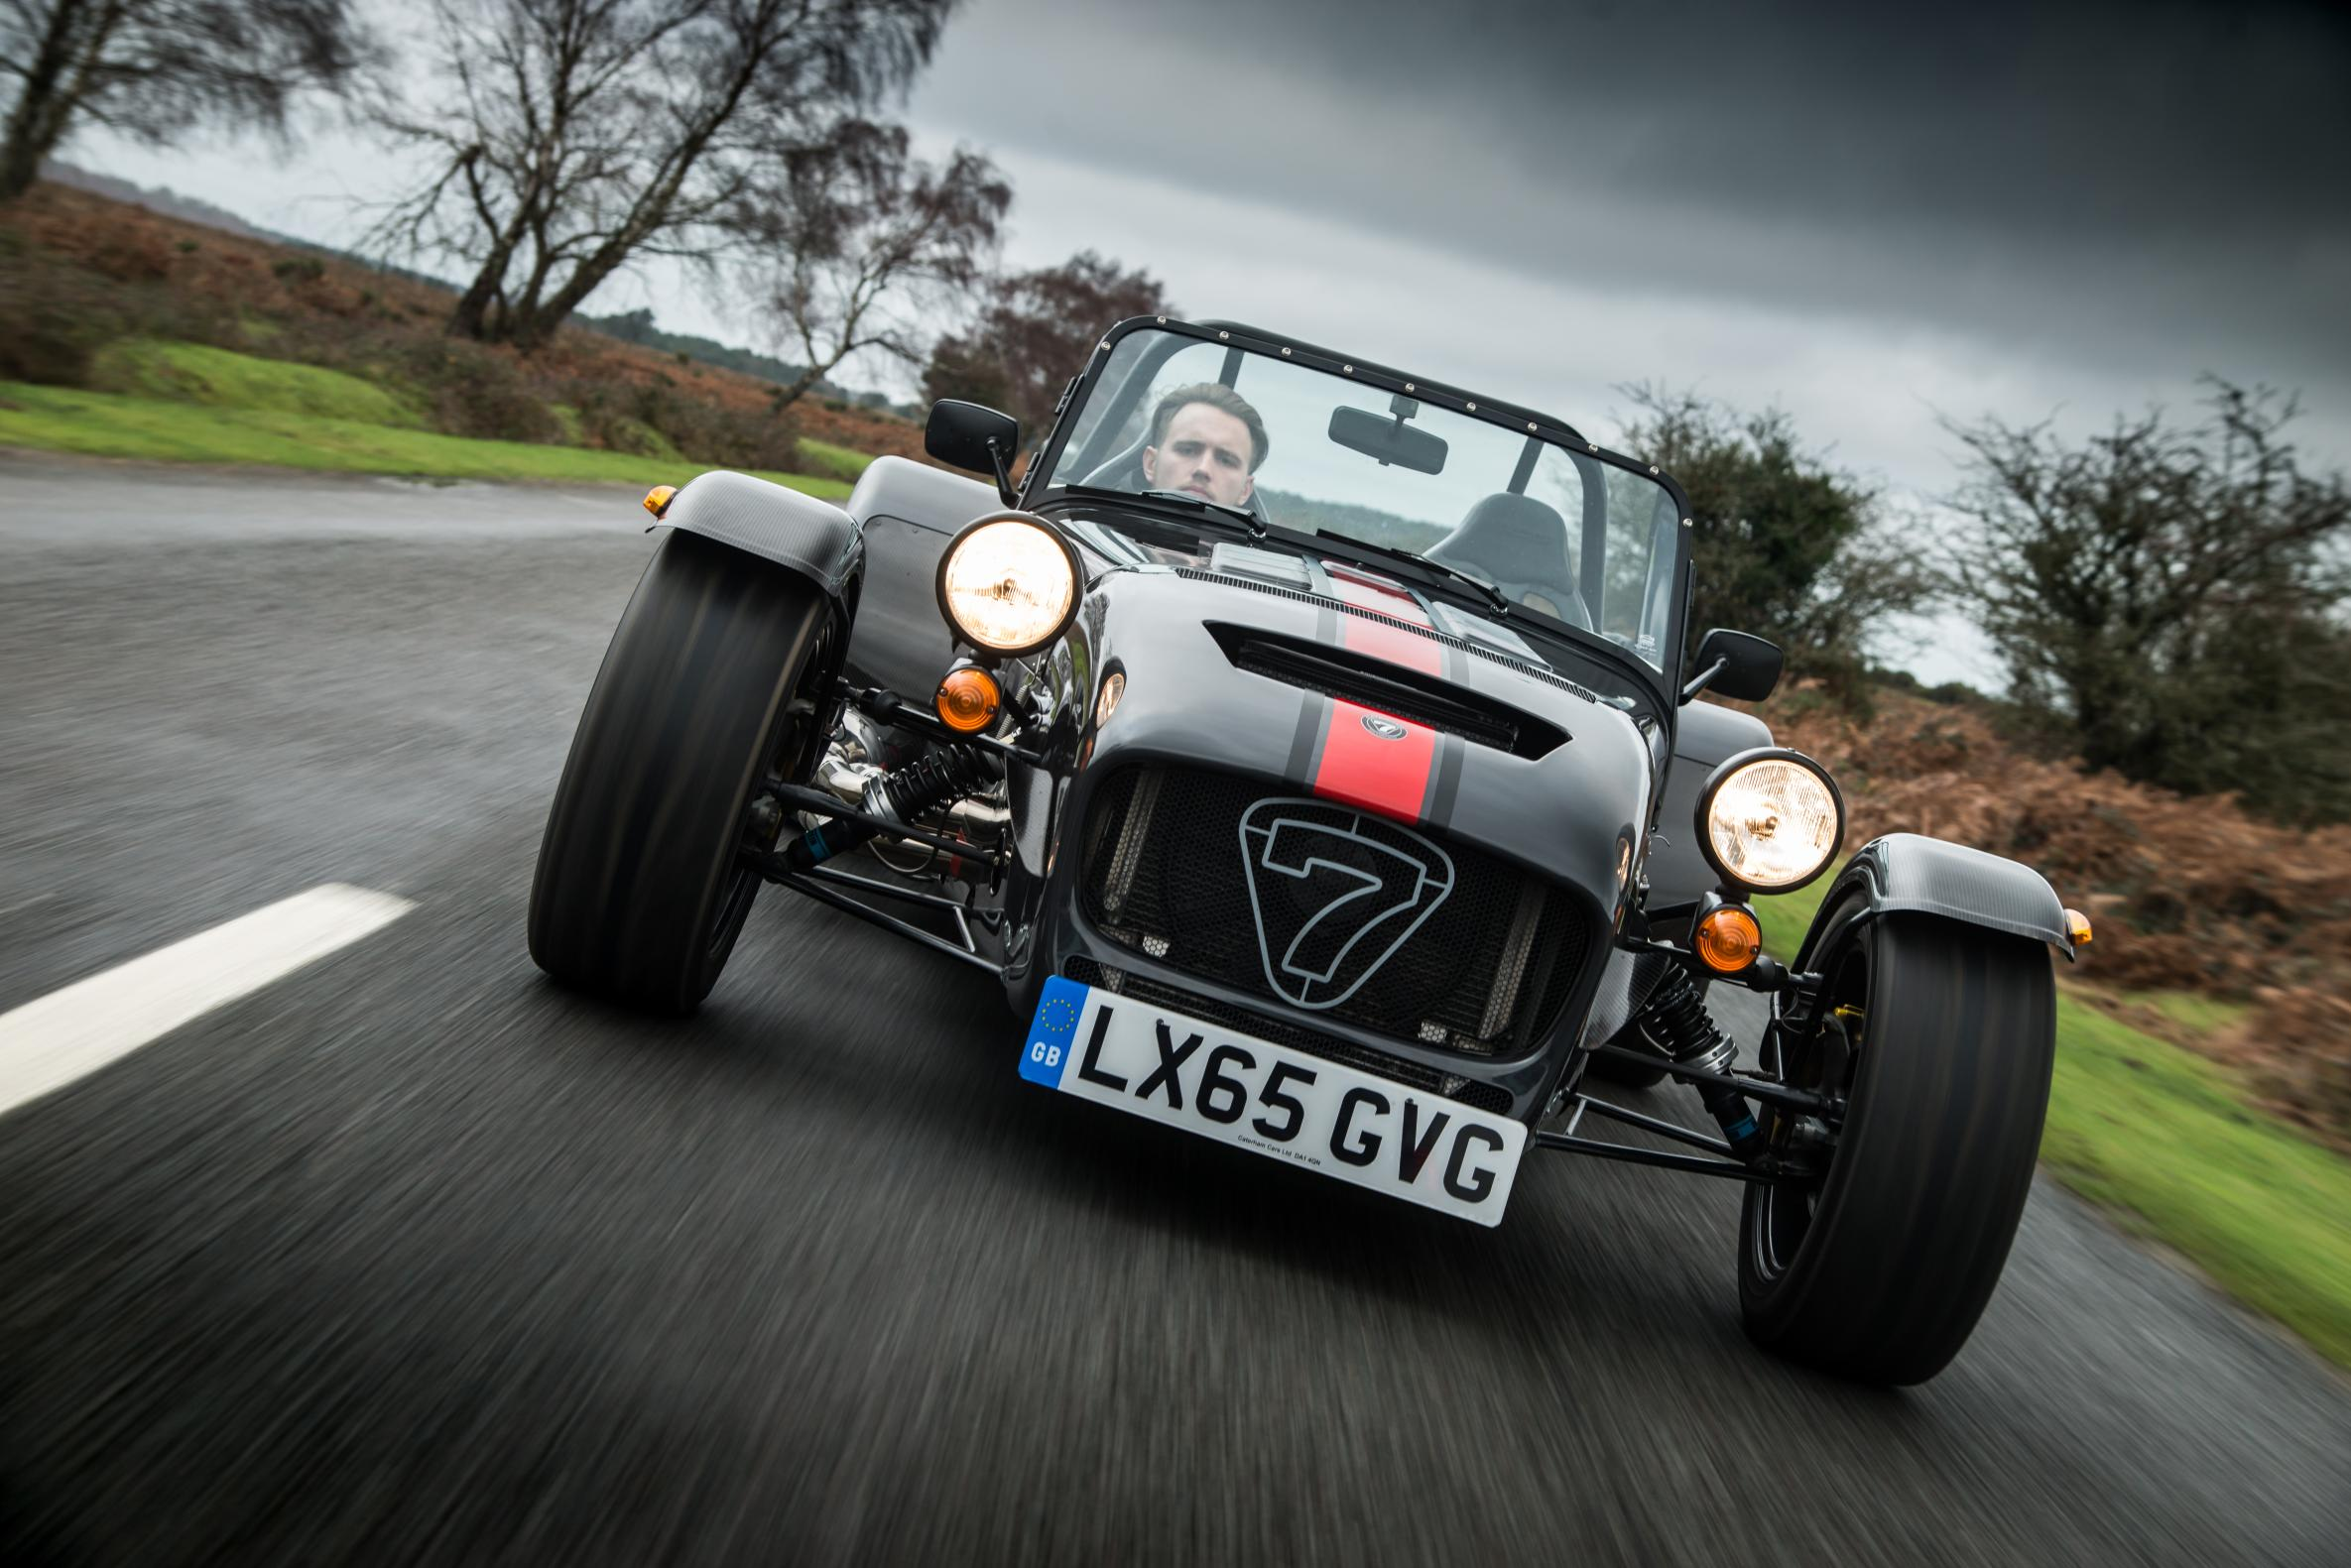 Caterham front view